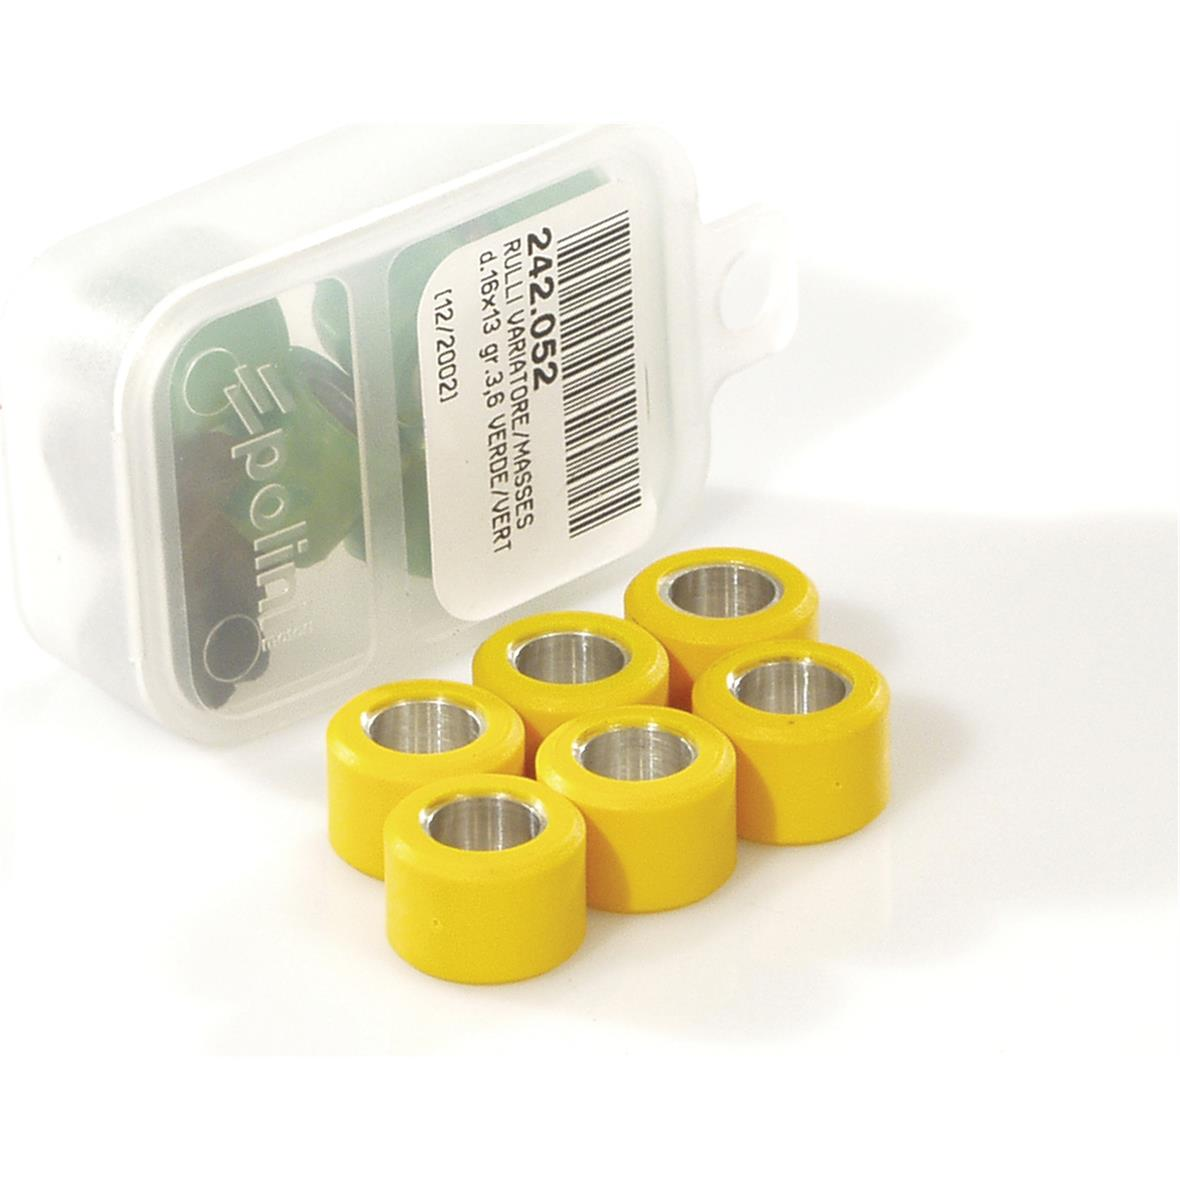 Product Image for 'Variator Rollers POLINI 17x12 mm 2,8gTitle'